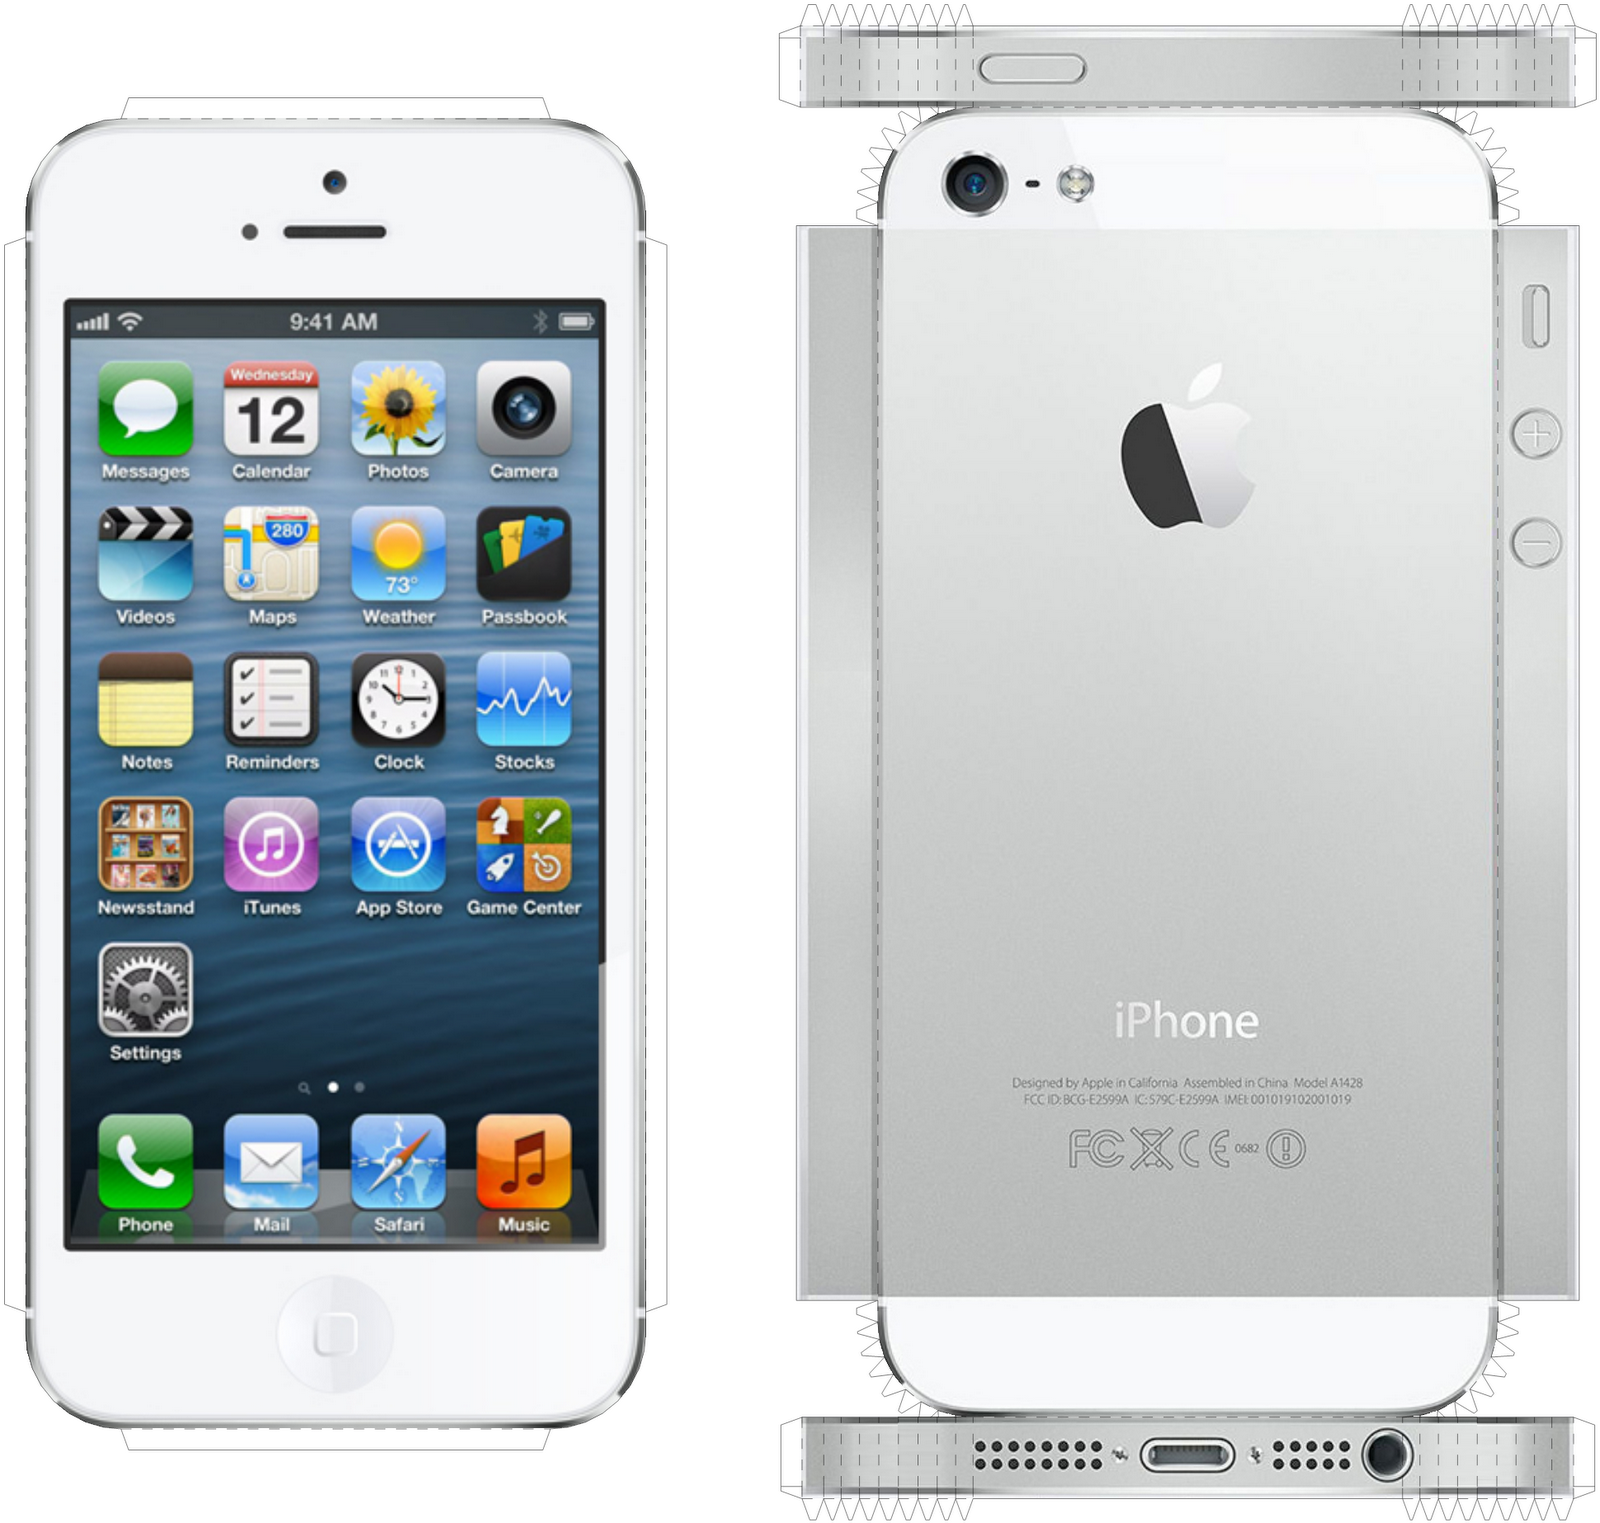 Iphone 5 back png apple iphone 5 16gb - Iphone5white Png 1600 1523 New Boardpin Piniphone 5spapercraft